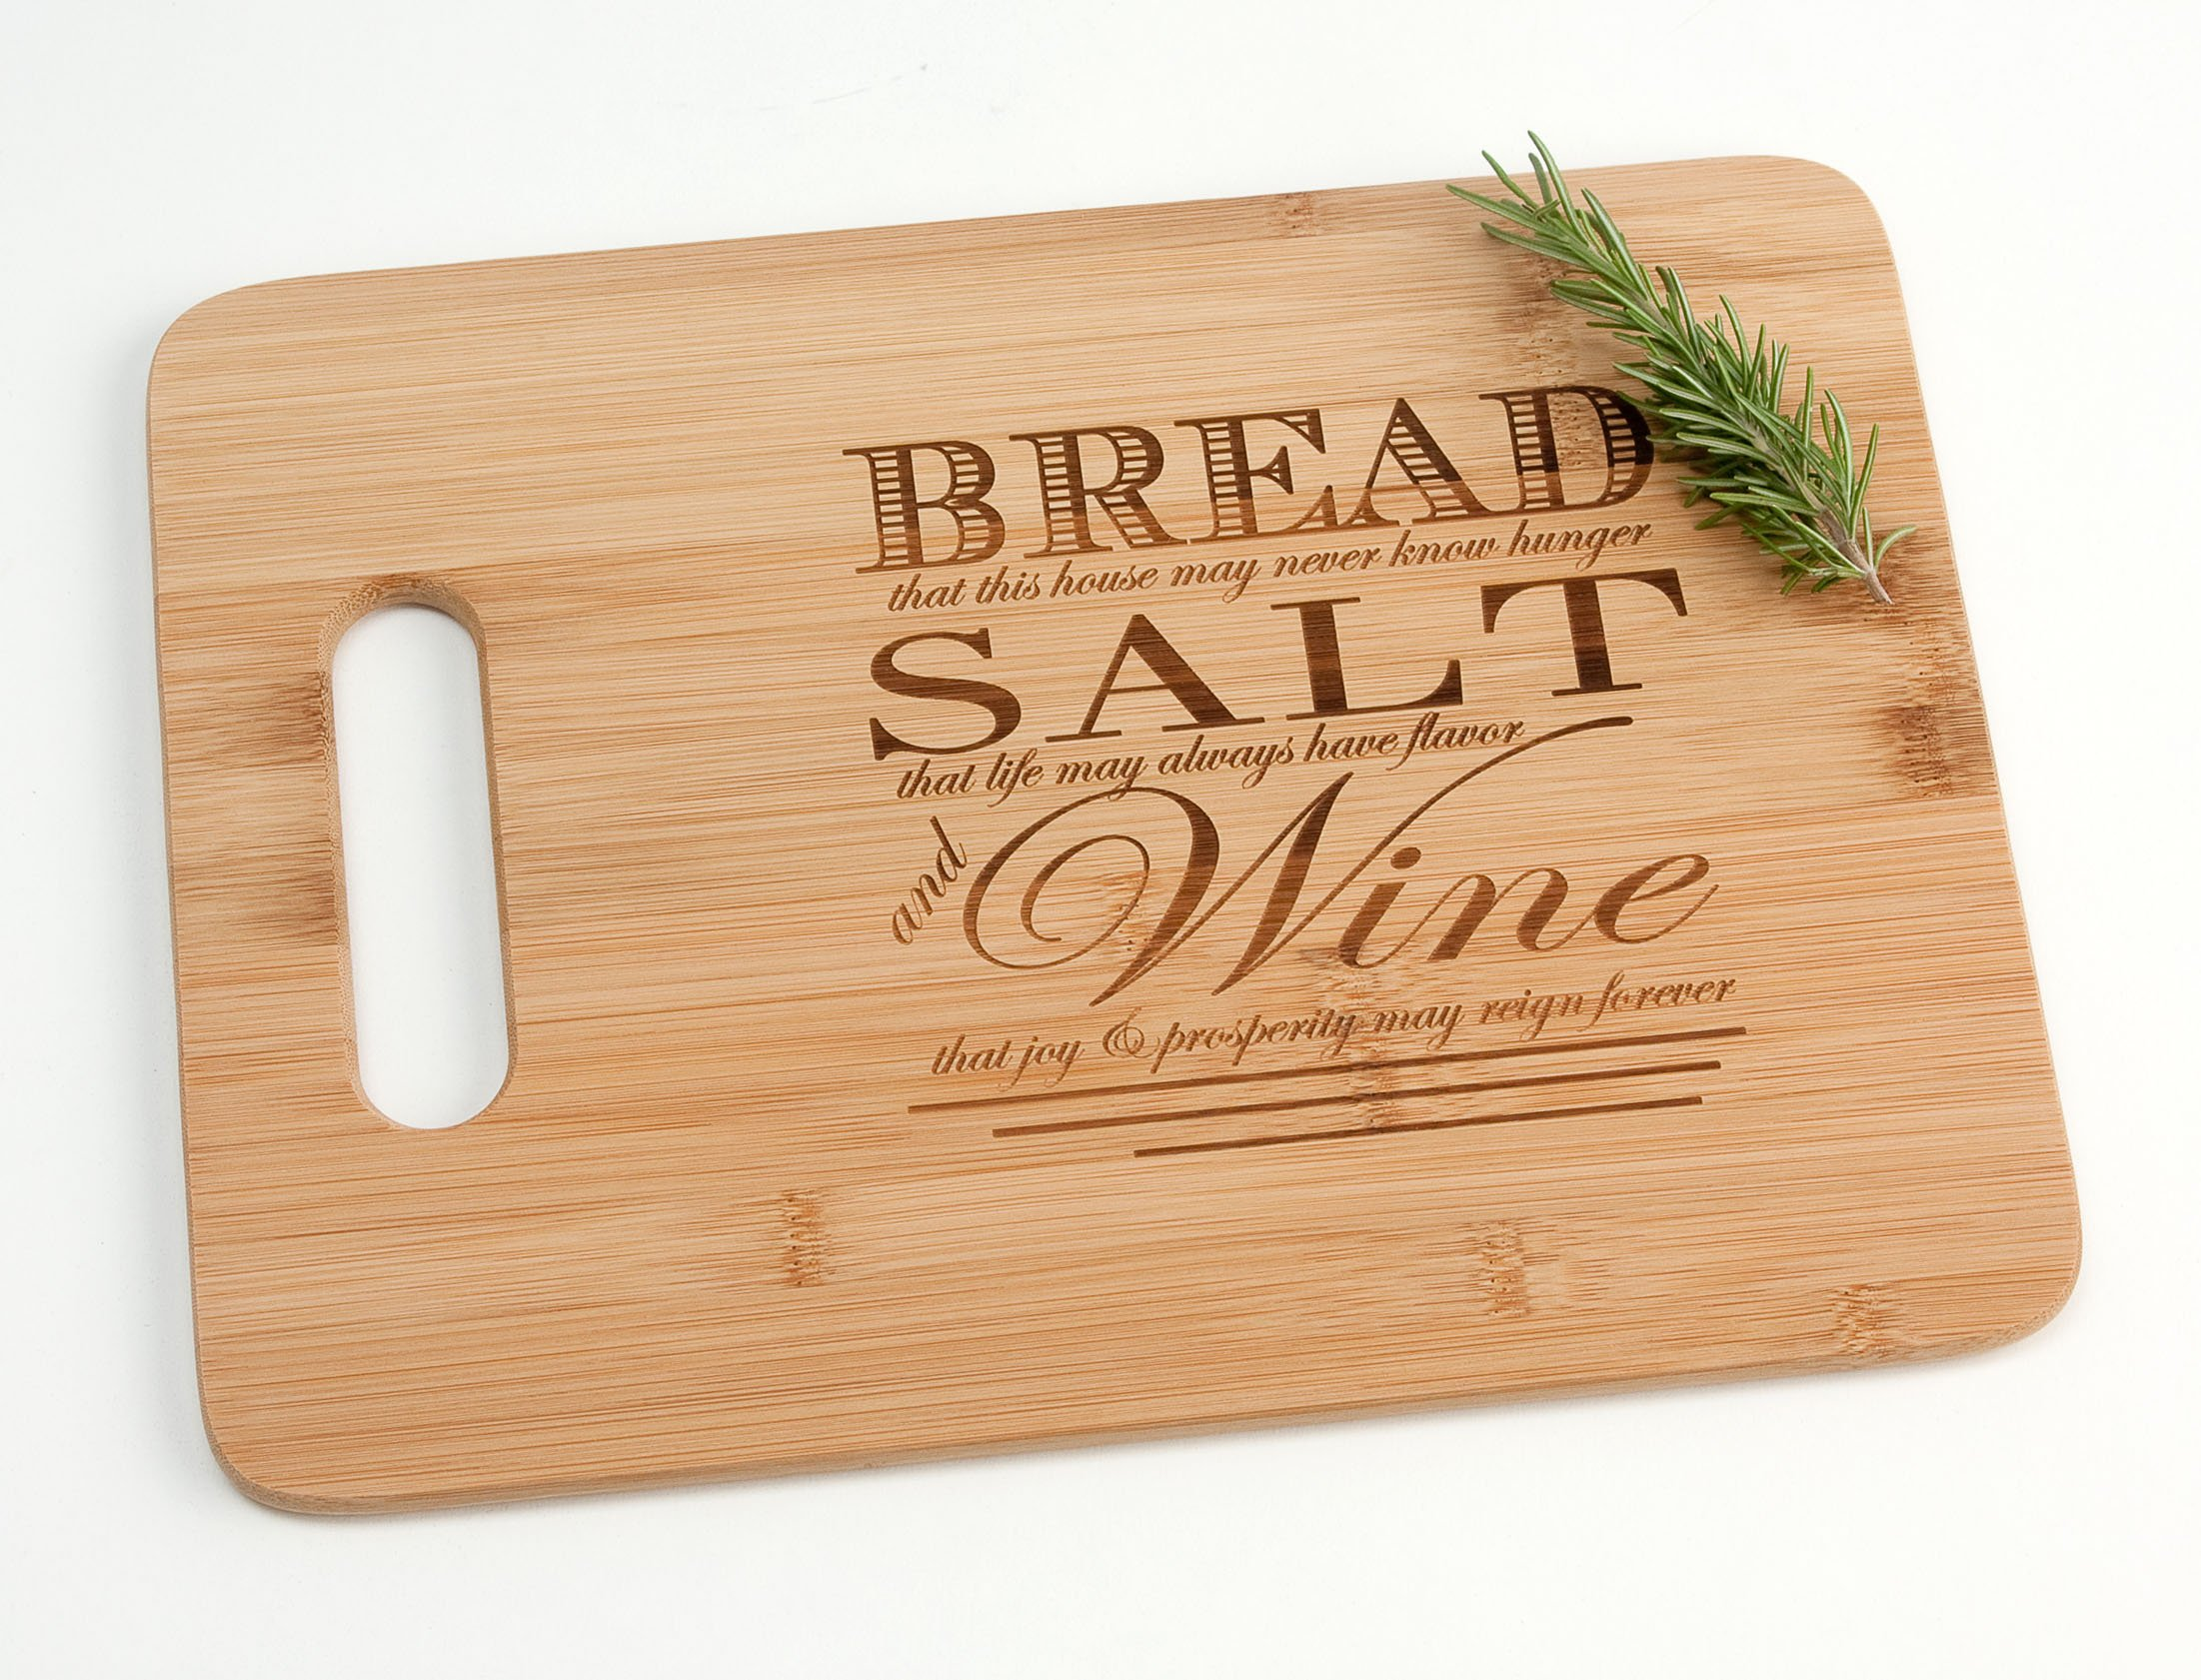 Engraved Wood Cutting Board Housewarming Gift, Bread Salt Wine Quote from It's a Wonderful Life